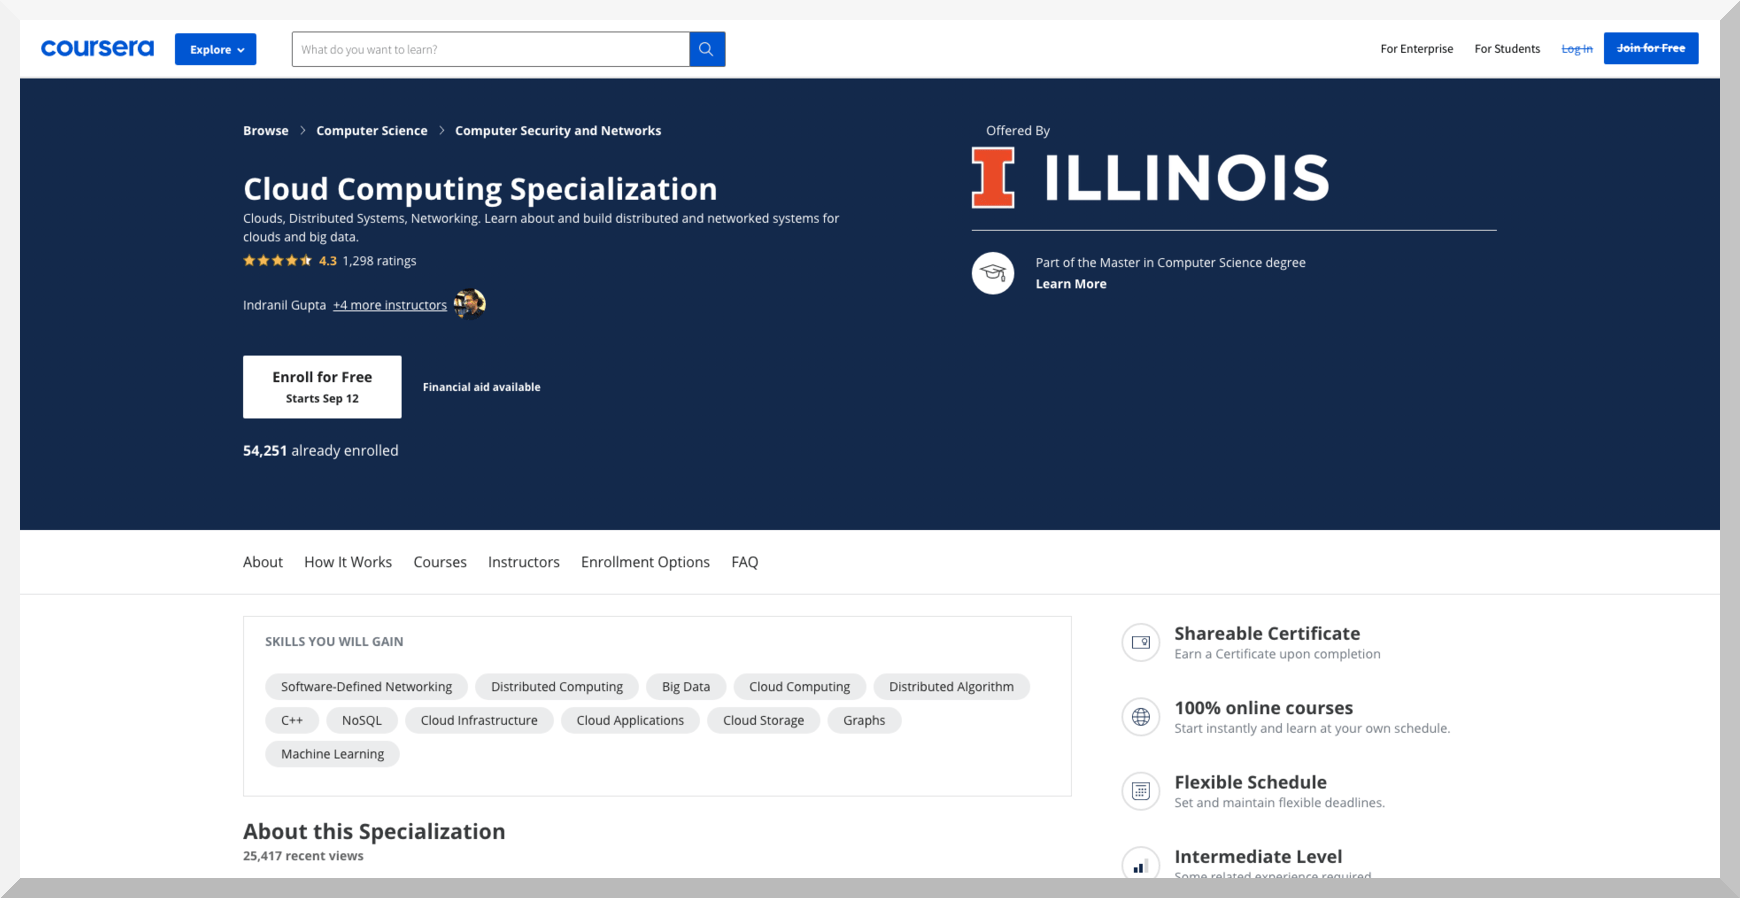 Cloud Computing Specialization by University of Illinois – Coursera